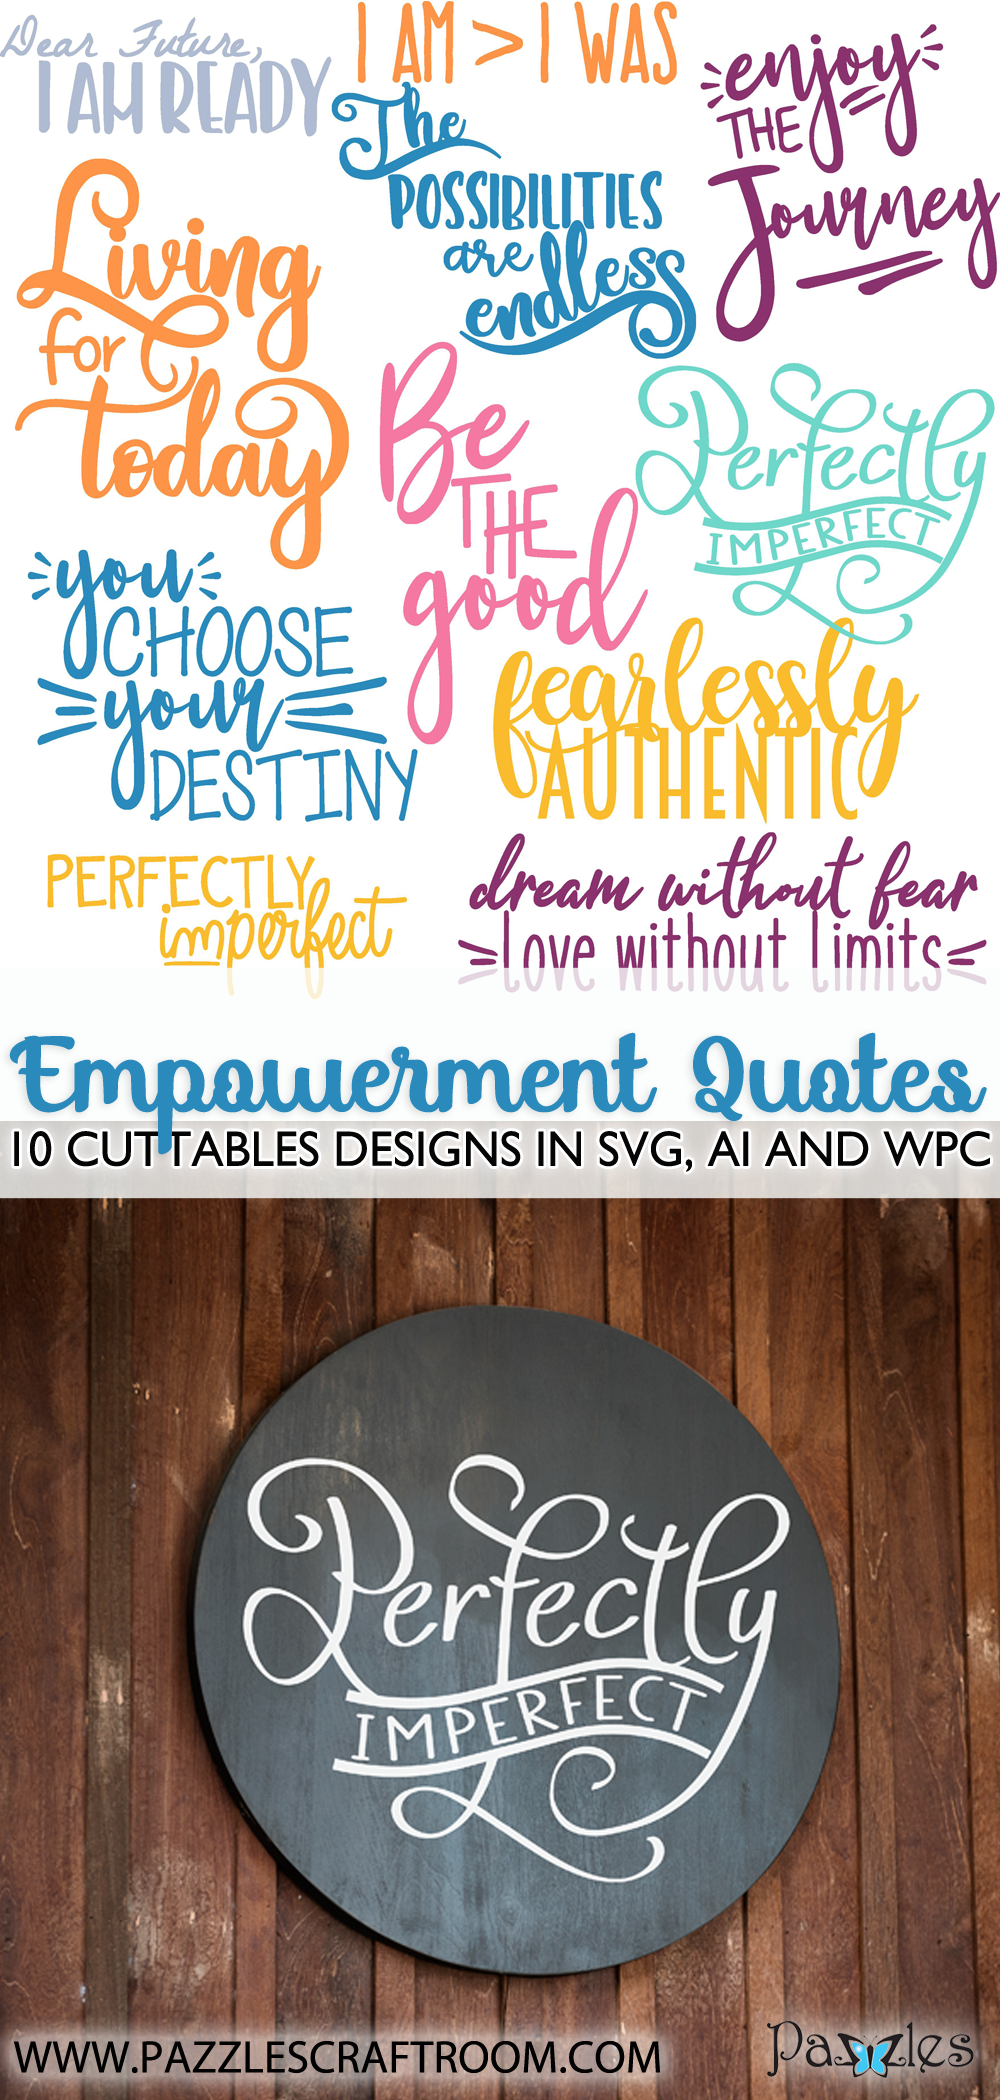 Pazzles Empowering Quotes Cuttable Collection with instant download in SVG, AI, and WPC. Compatible with all major electronic cutters including Pazzles Inspiration, Cricut, and Silhouette Cameo. Design by Amanda Vander Woude